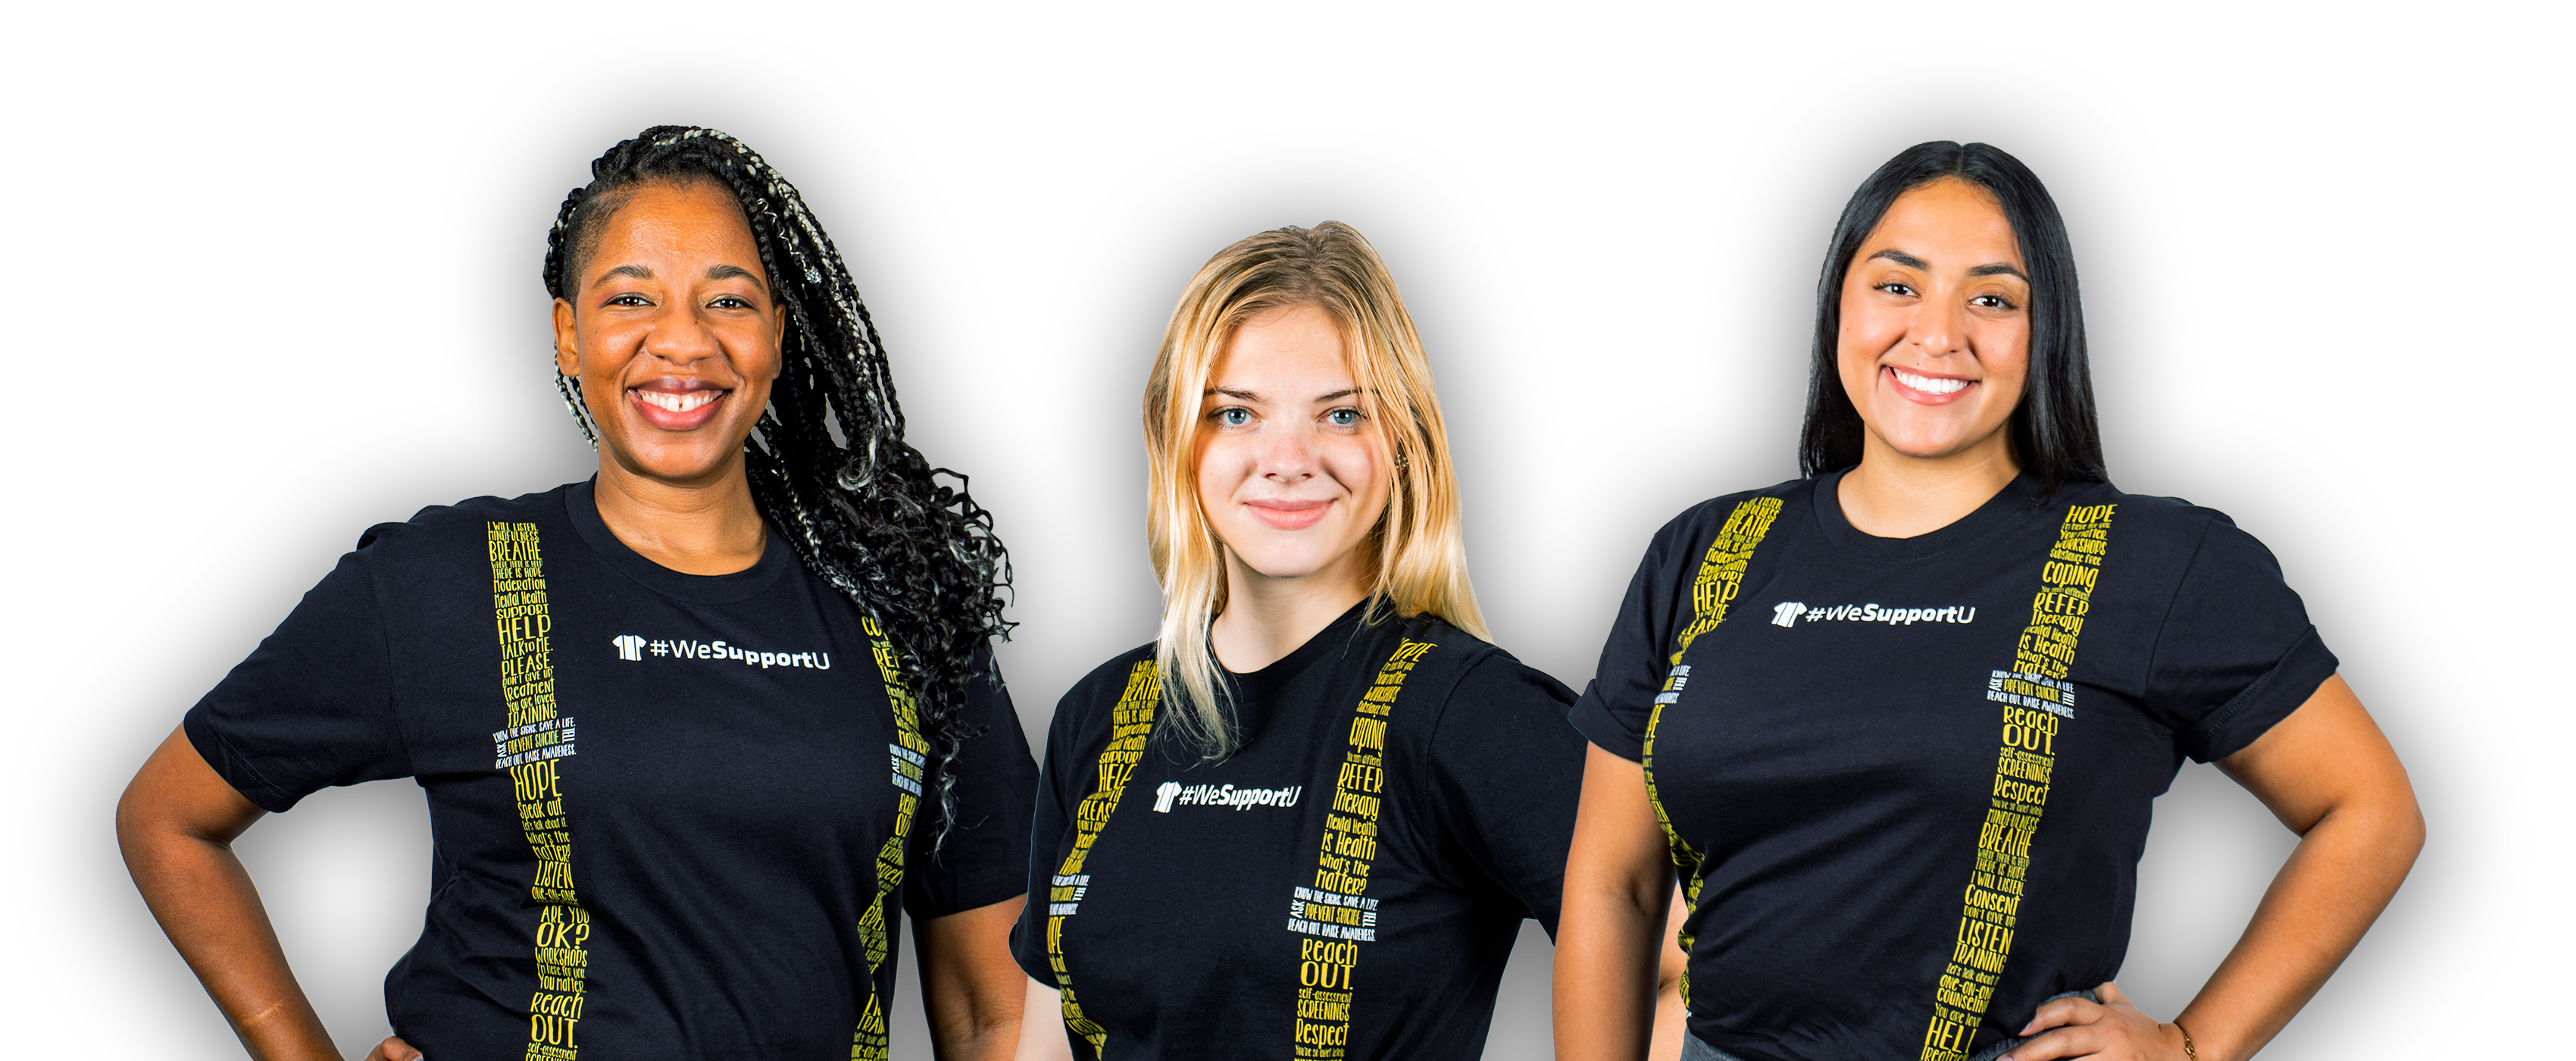 image of three diverse ethnicity female wearing wesupportu suspenders shirt